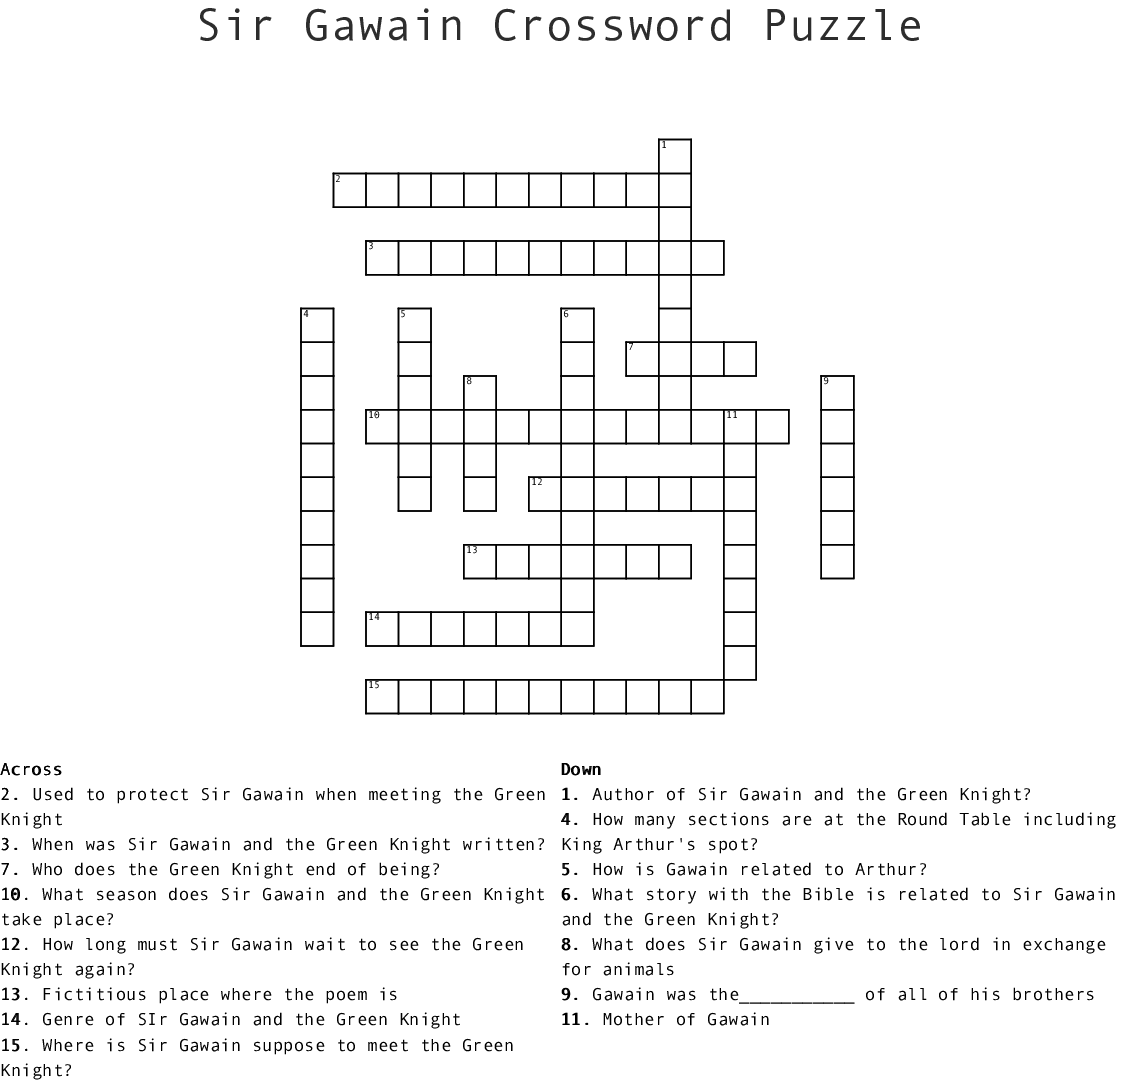 Sir Gawain Crossword Puzzle Crossword